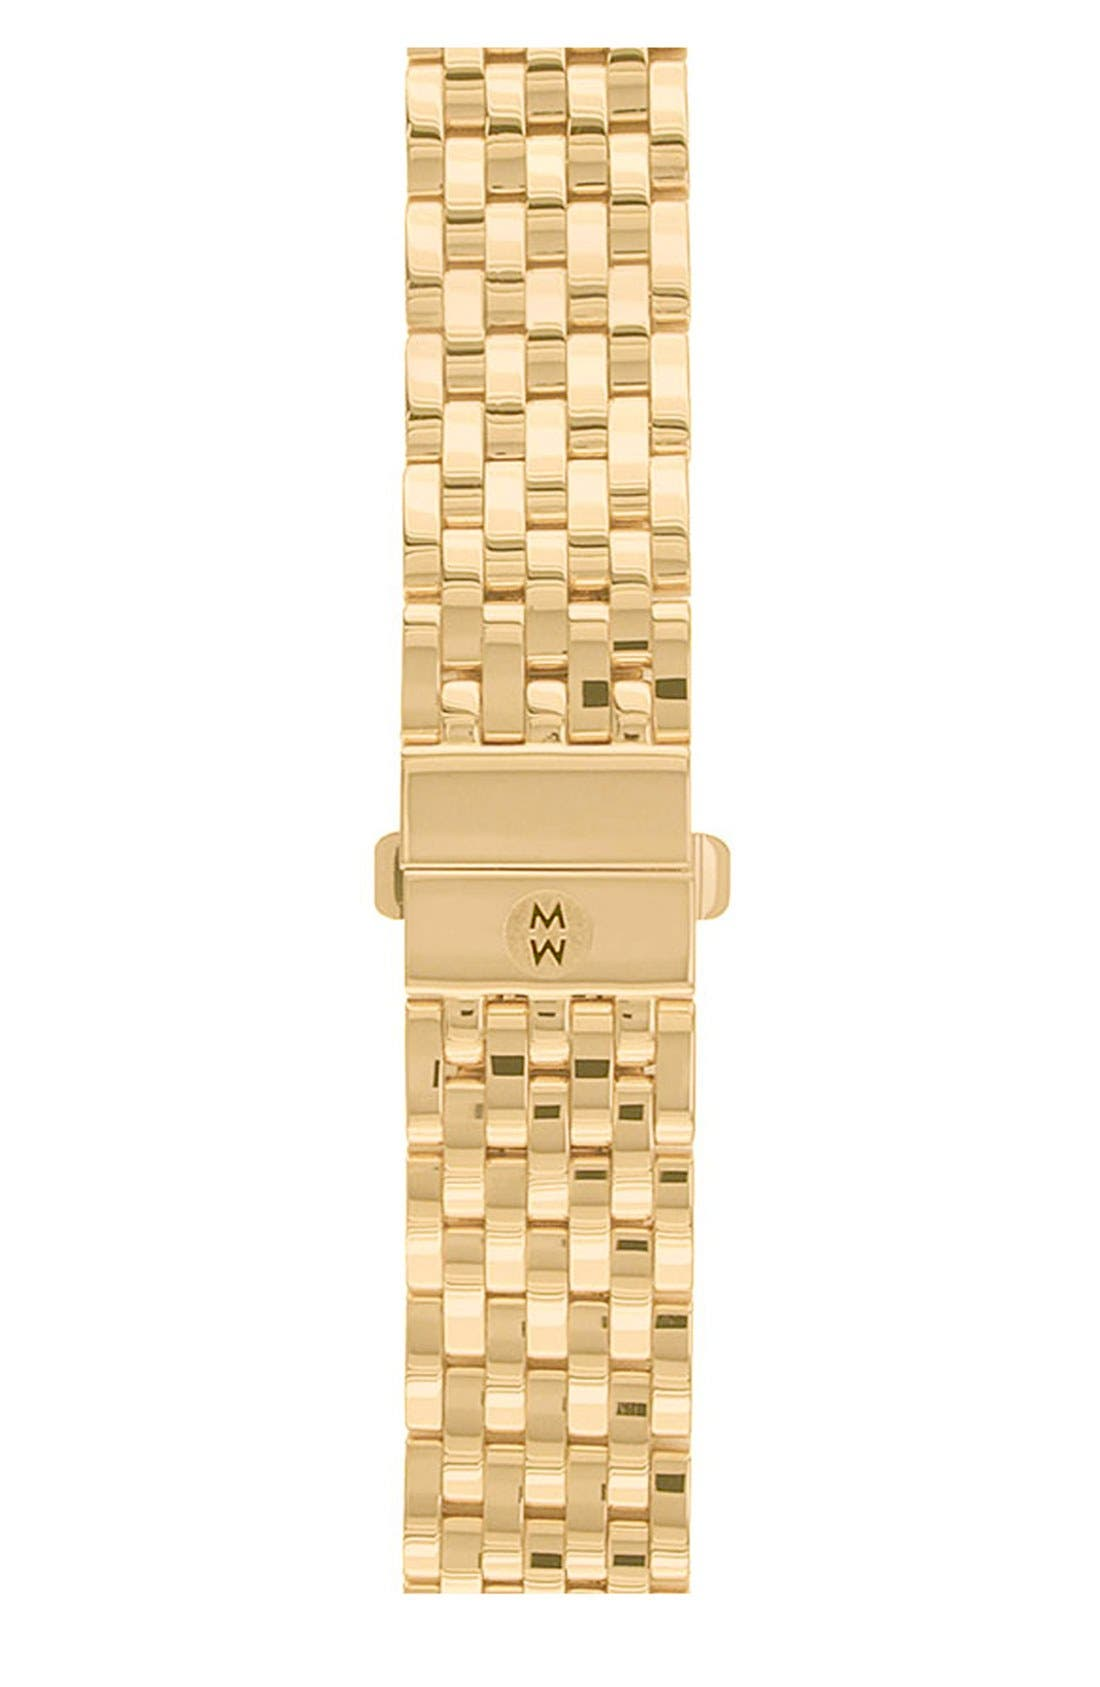 Main Image - MICHELE Deco 18mm Gold Plated Bracelet Watchband